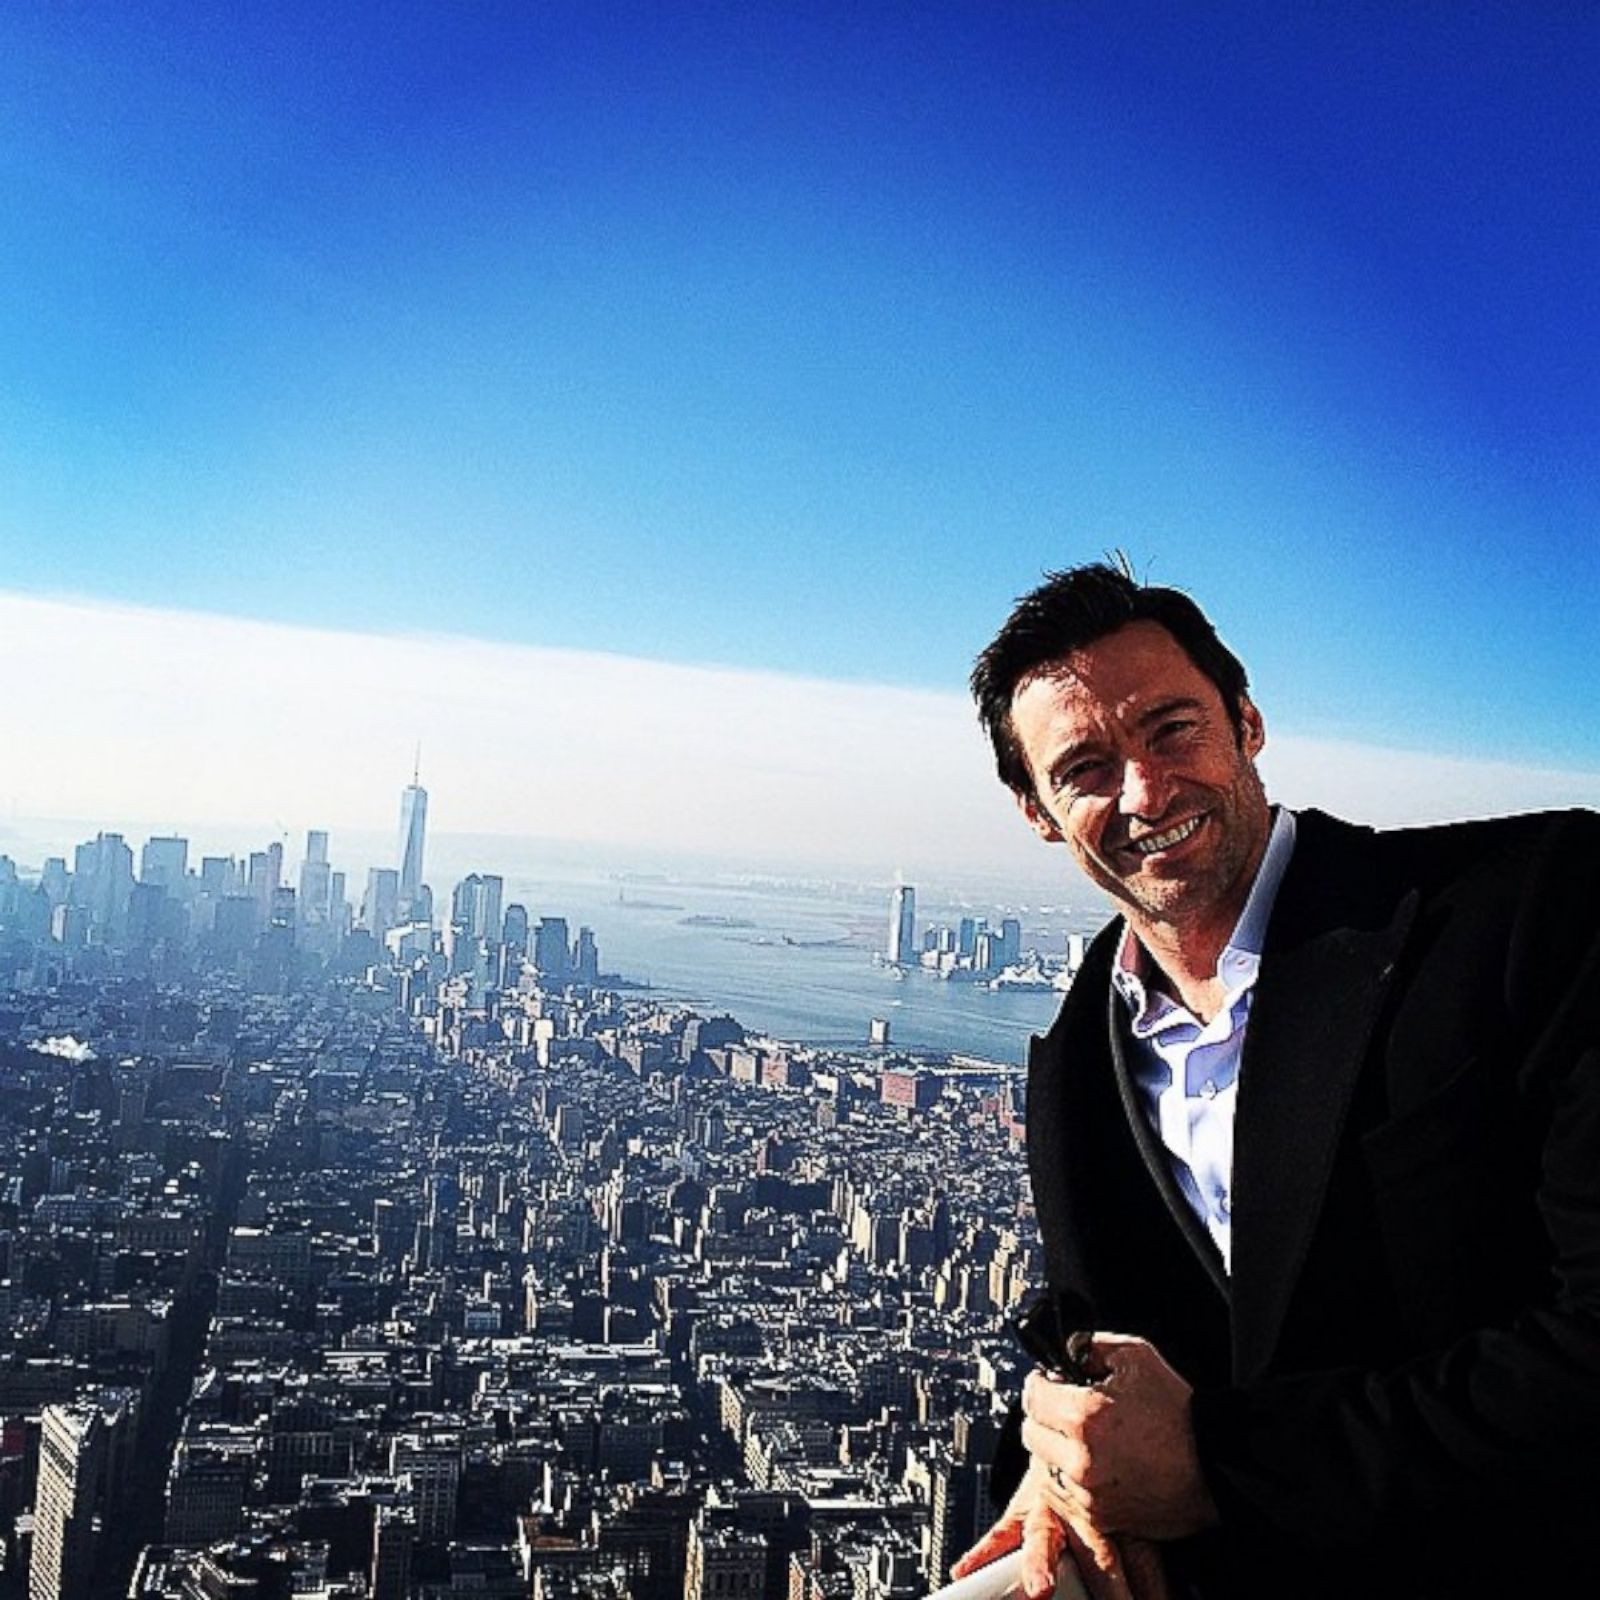 hugh jackman shares a selfie from the empire state building picture celebrities on social. Black Bedroom Furniture Sets. Home Design Ideas